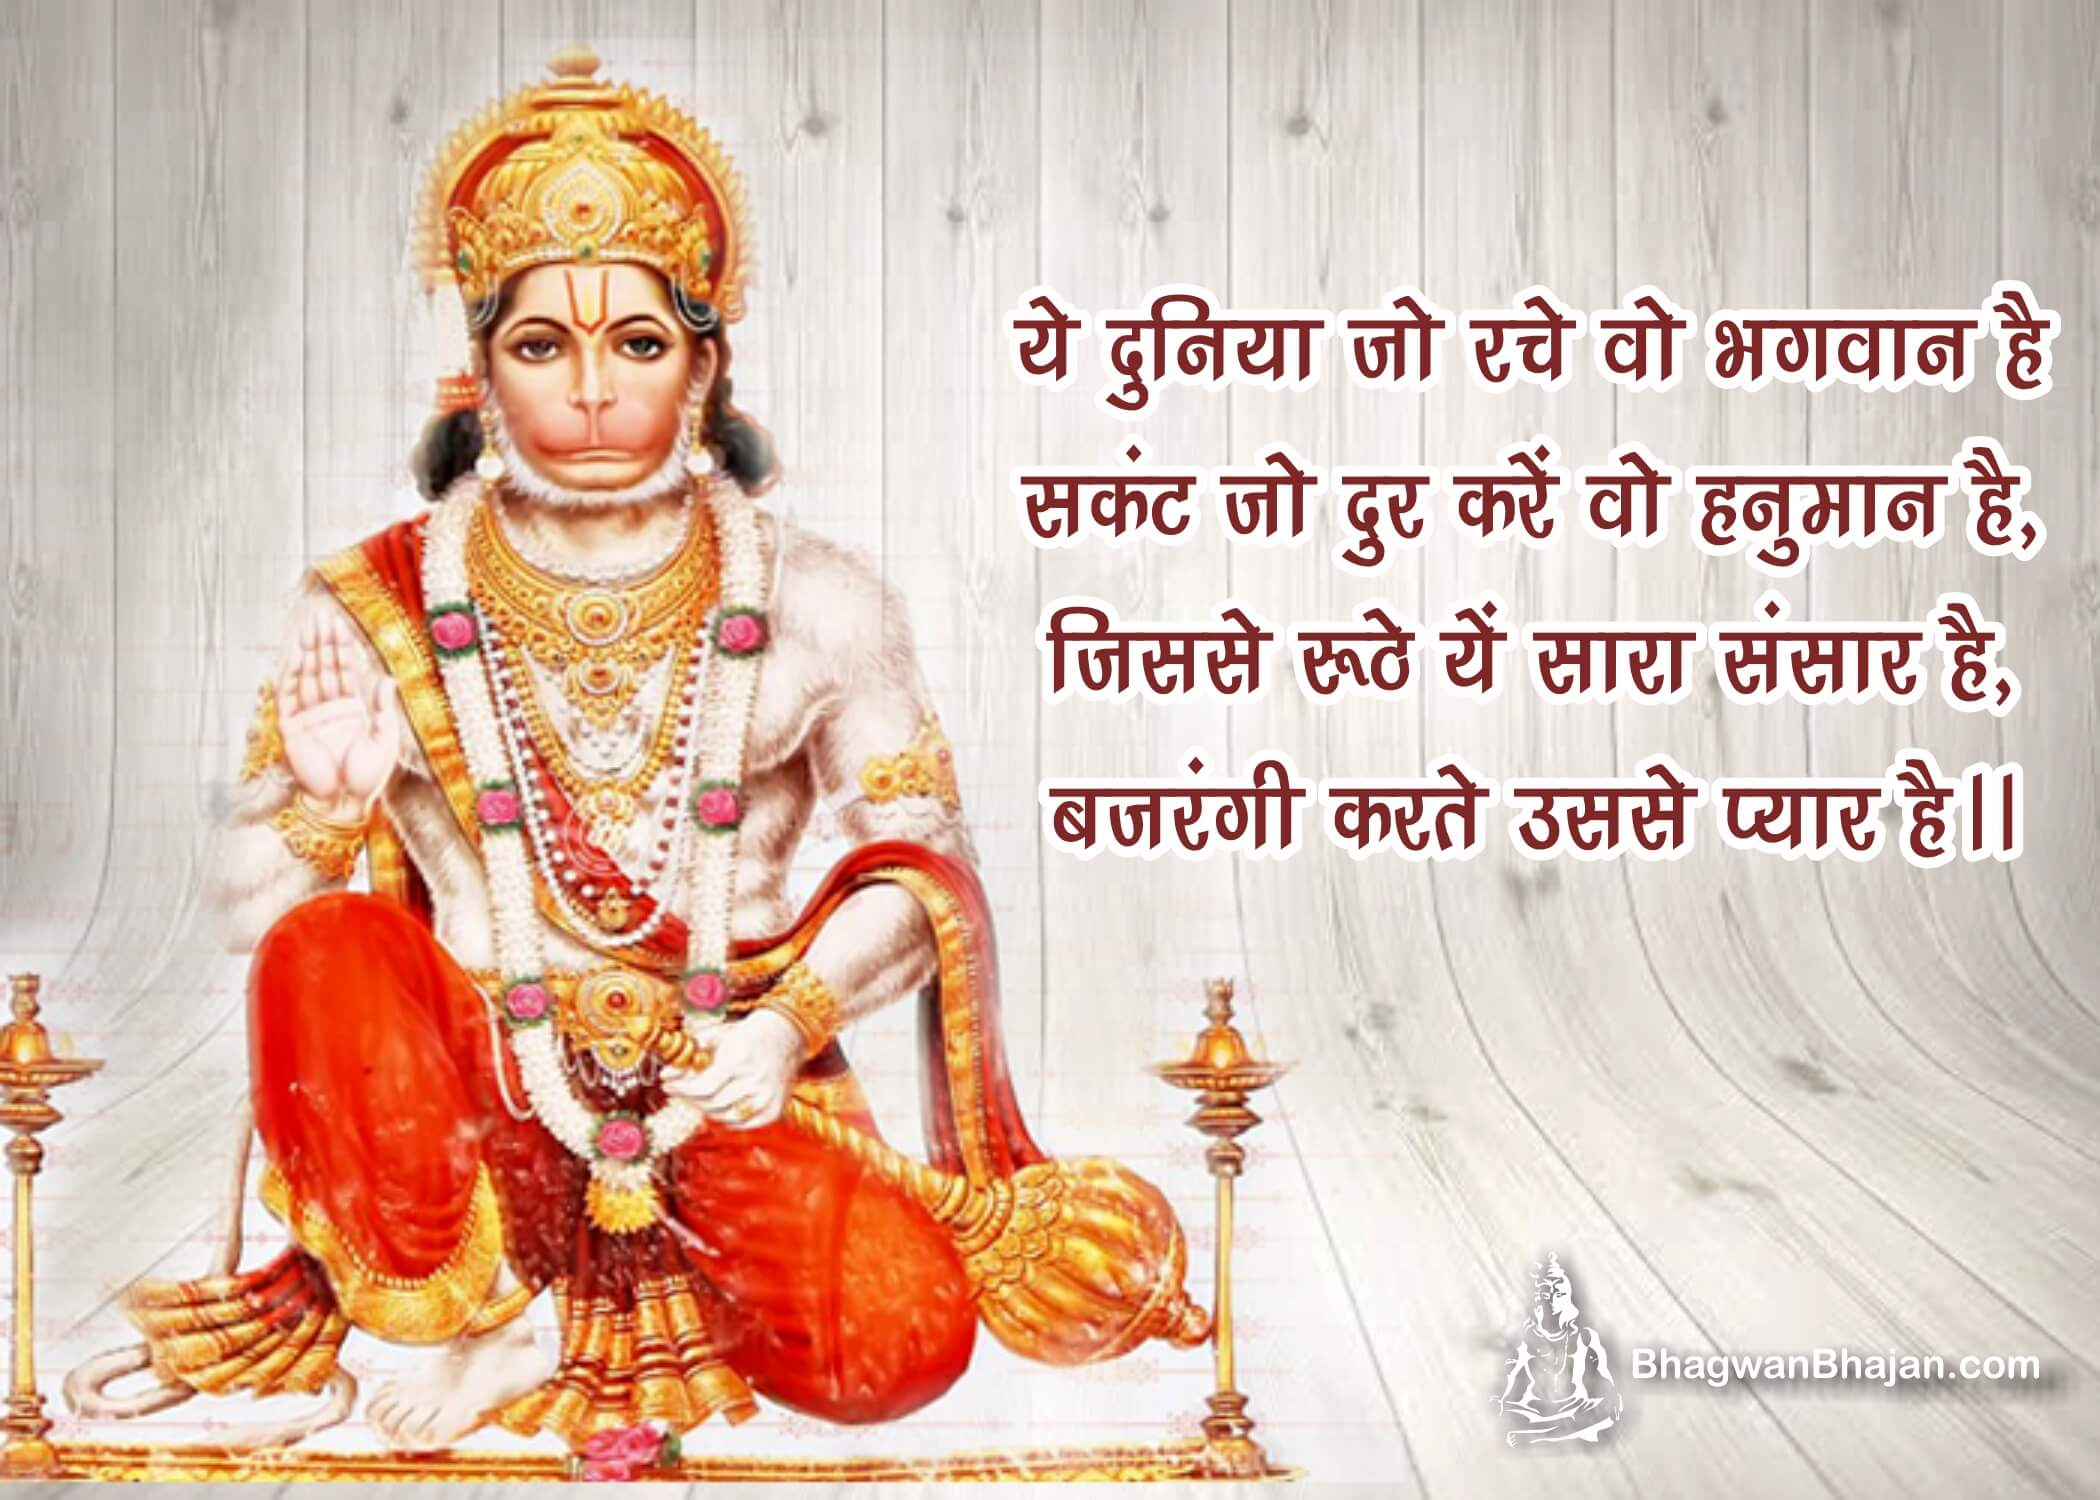 Bhagwan Shri Hanuman New Whatsapp Status Wallpaper & Images